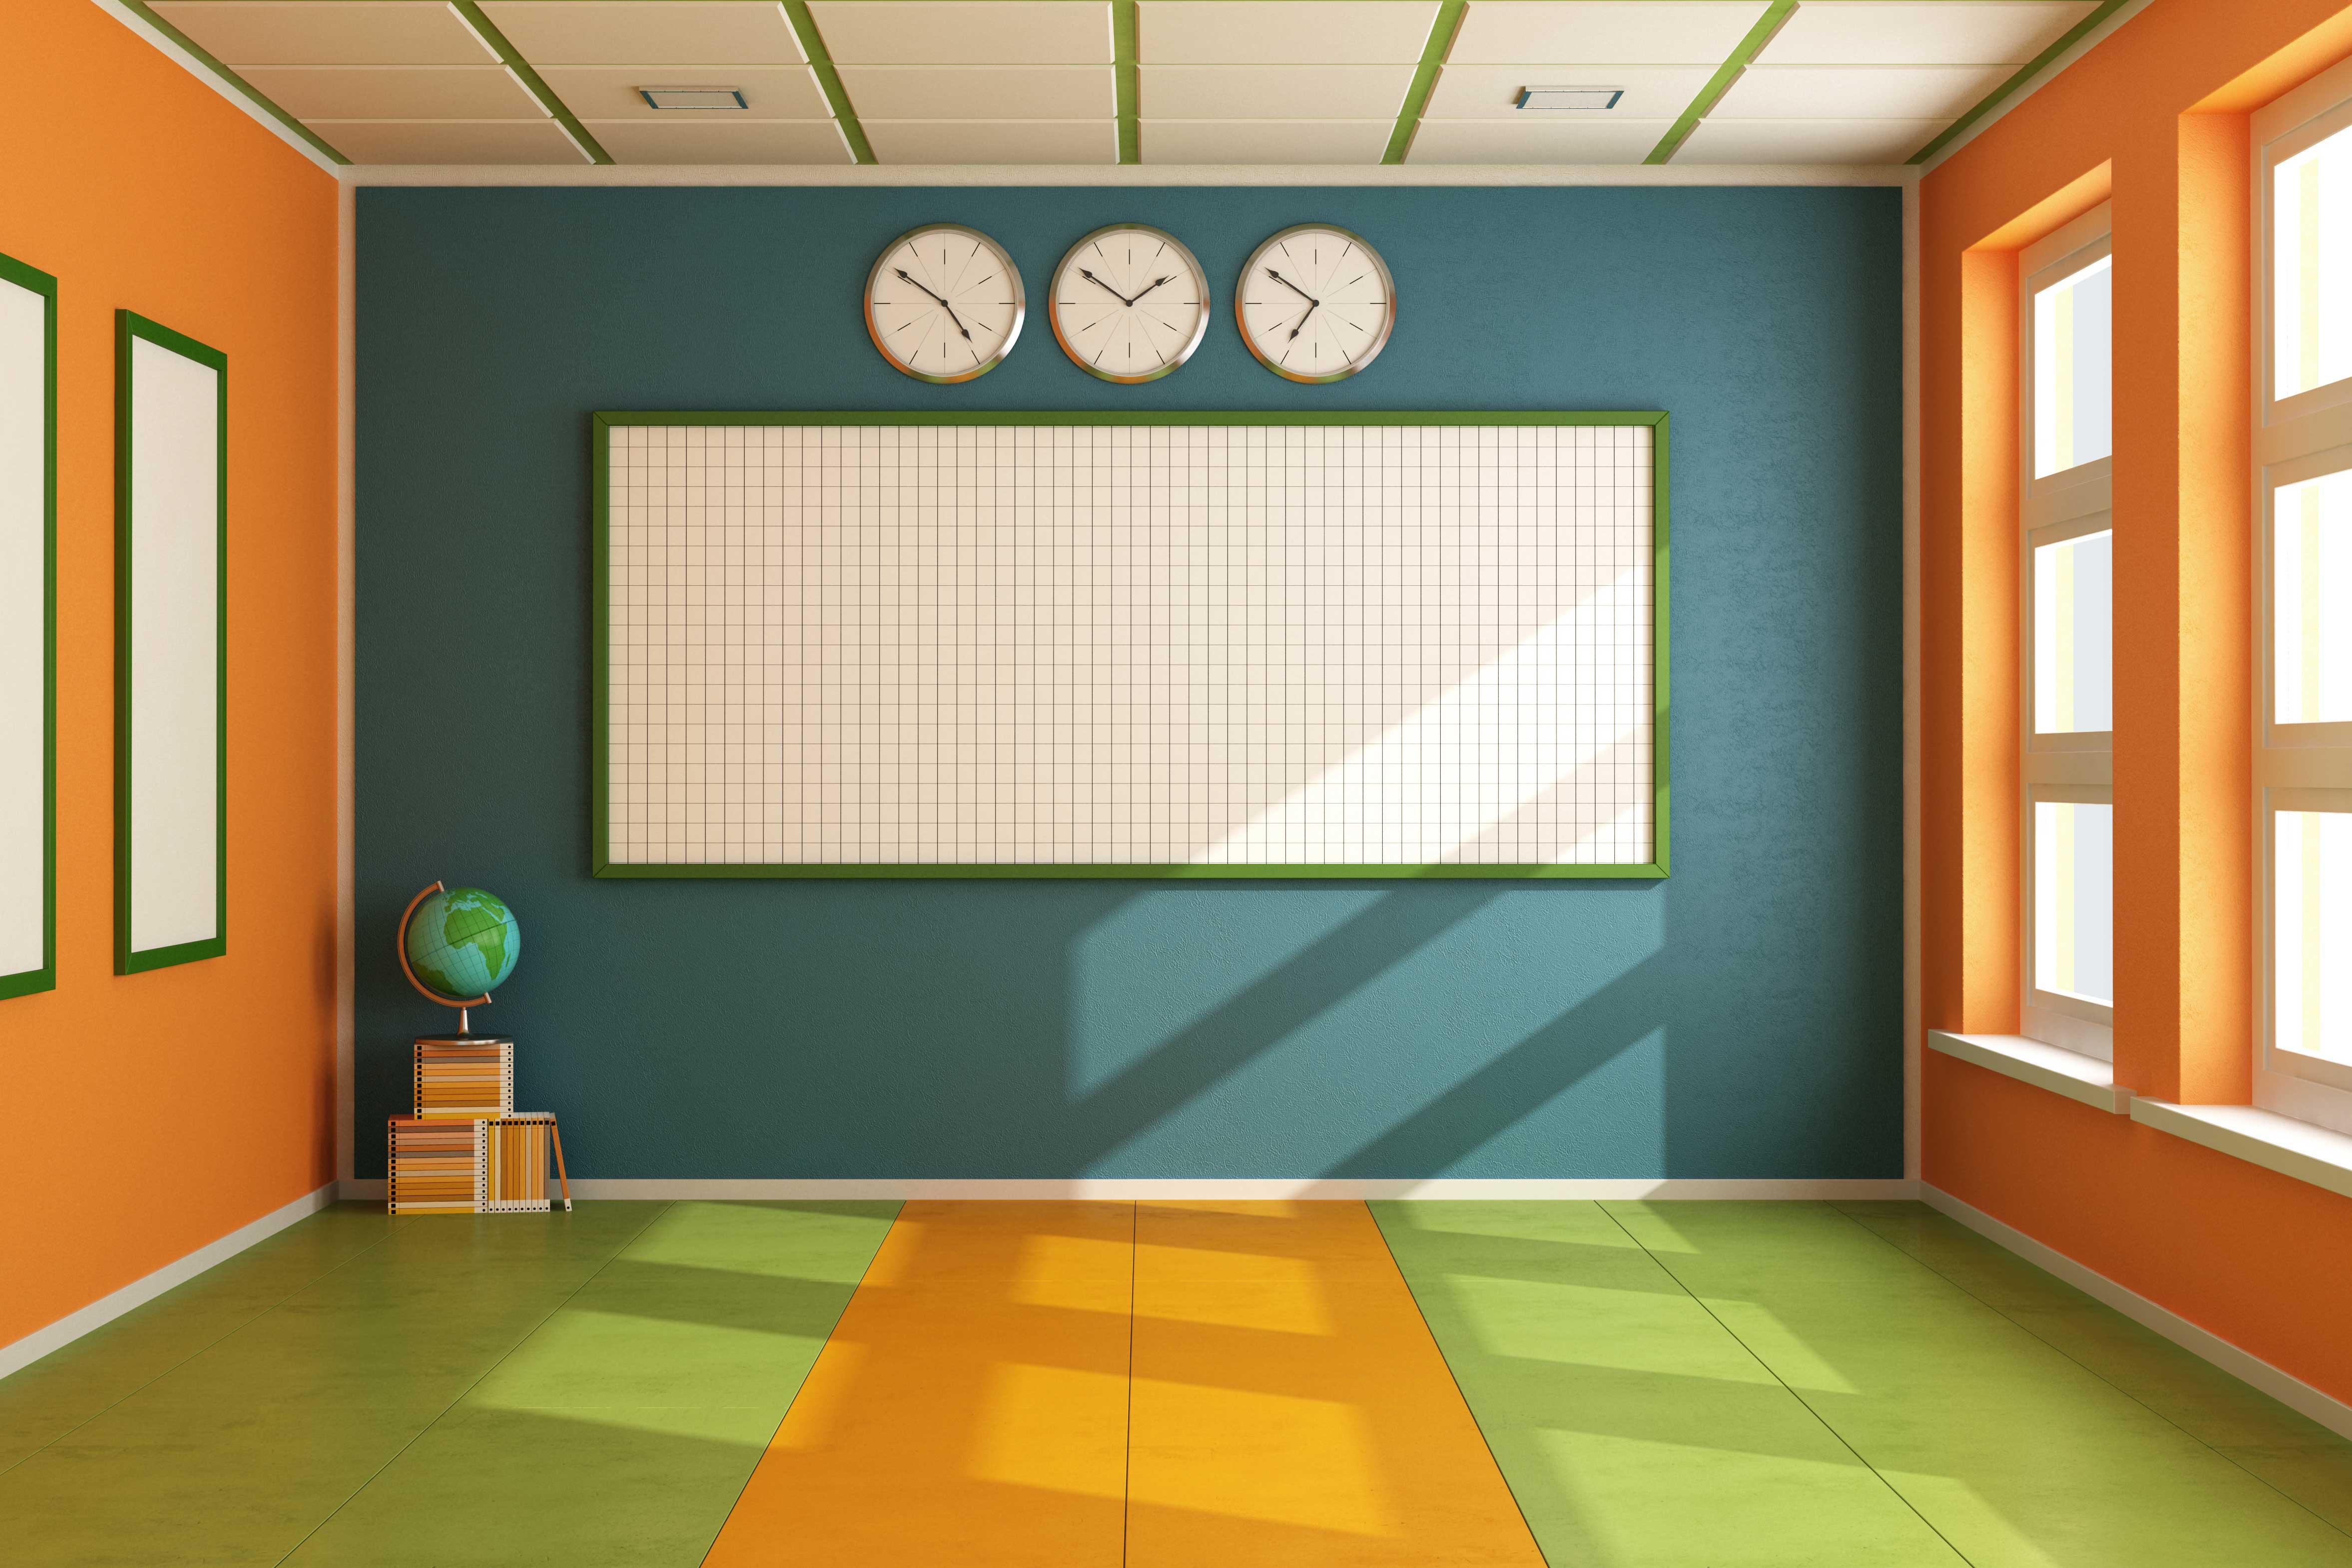 Ceiling clipart fluorescent light Free Clipart Clipart classroom%20clipart Classroom